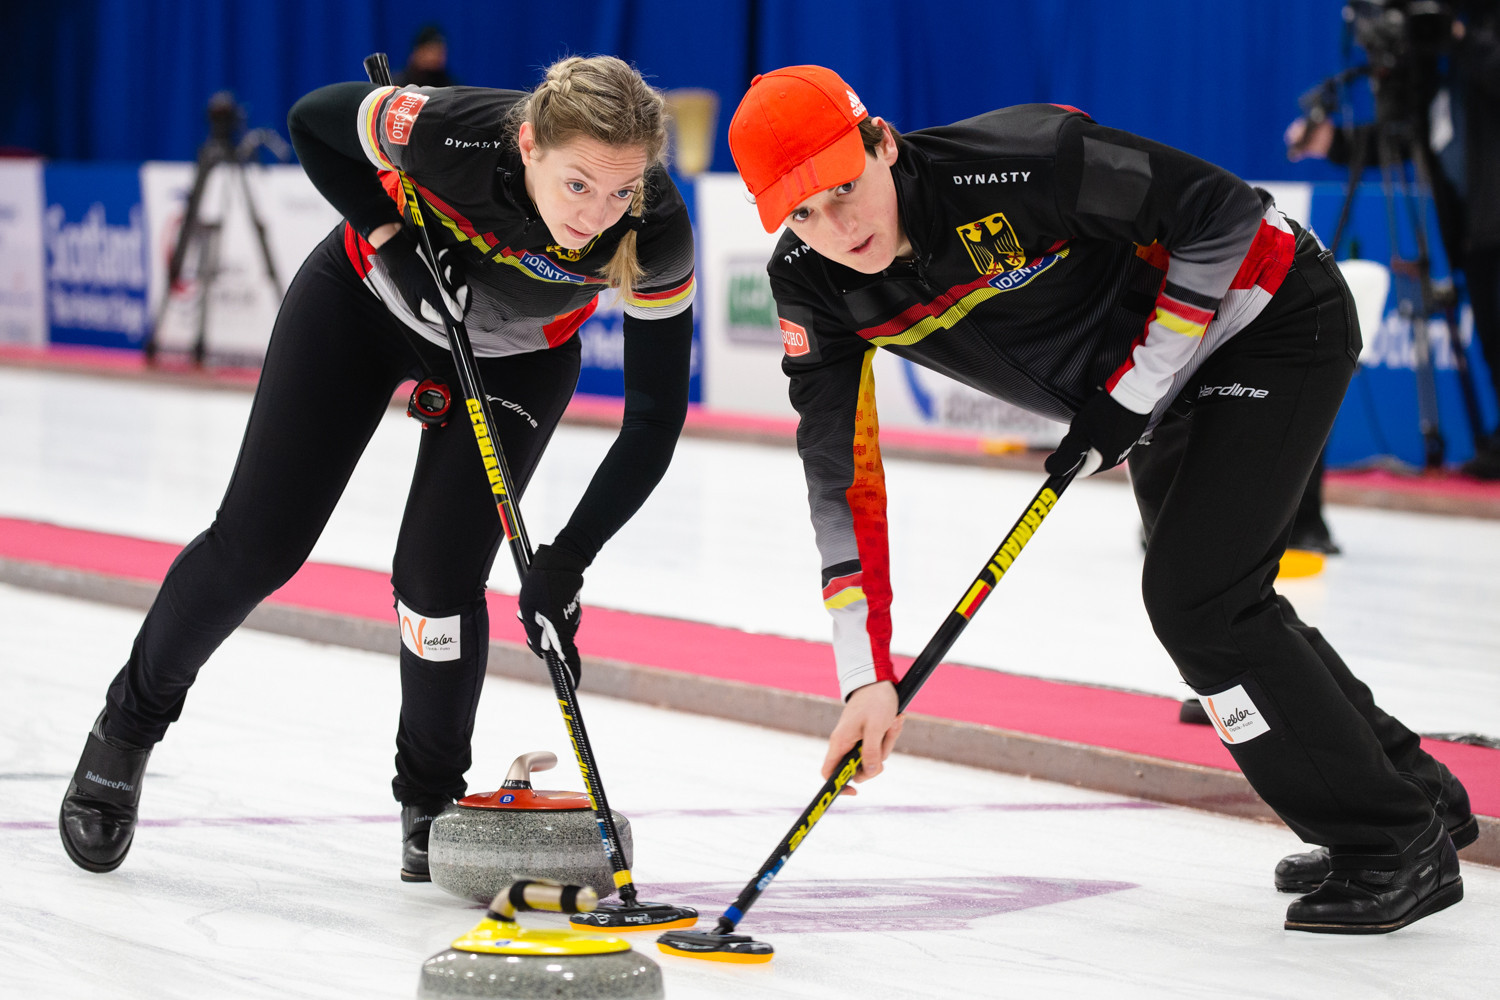 Sweden remain as only undefeated nation at World Mixed Doubles Curling Championship